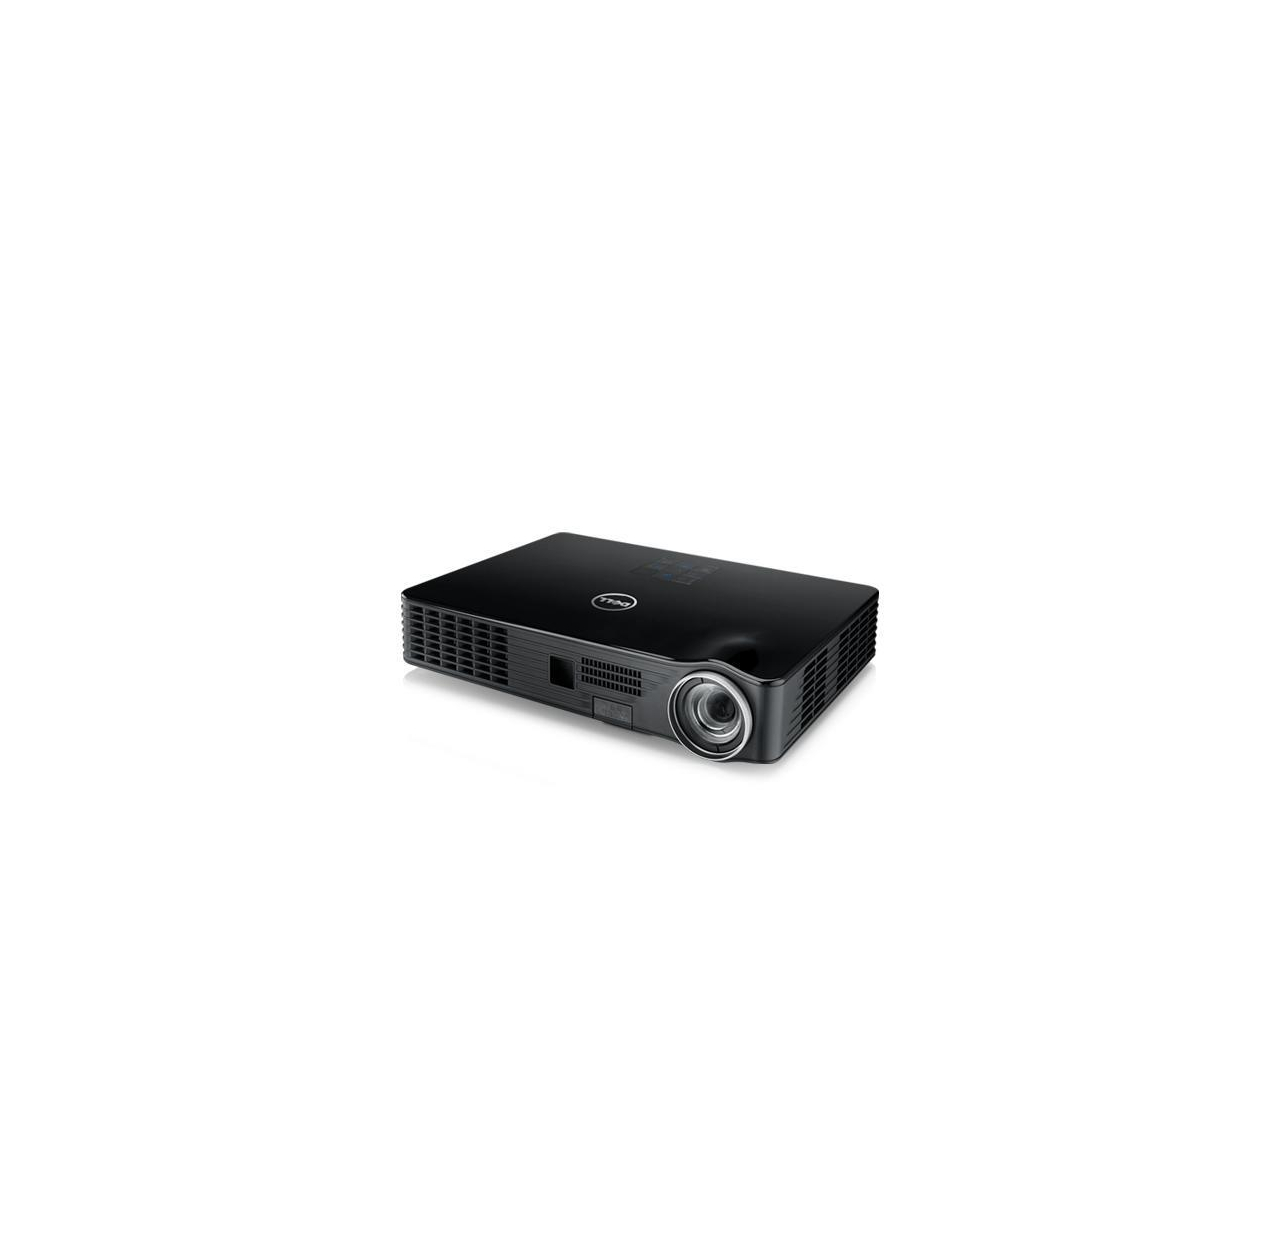 Projektor  Dell M900HD LED 1280x800 HDMI, 2GB, 3YNBD, WIDI